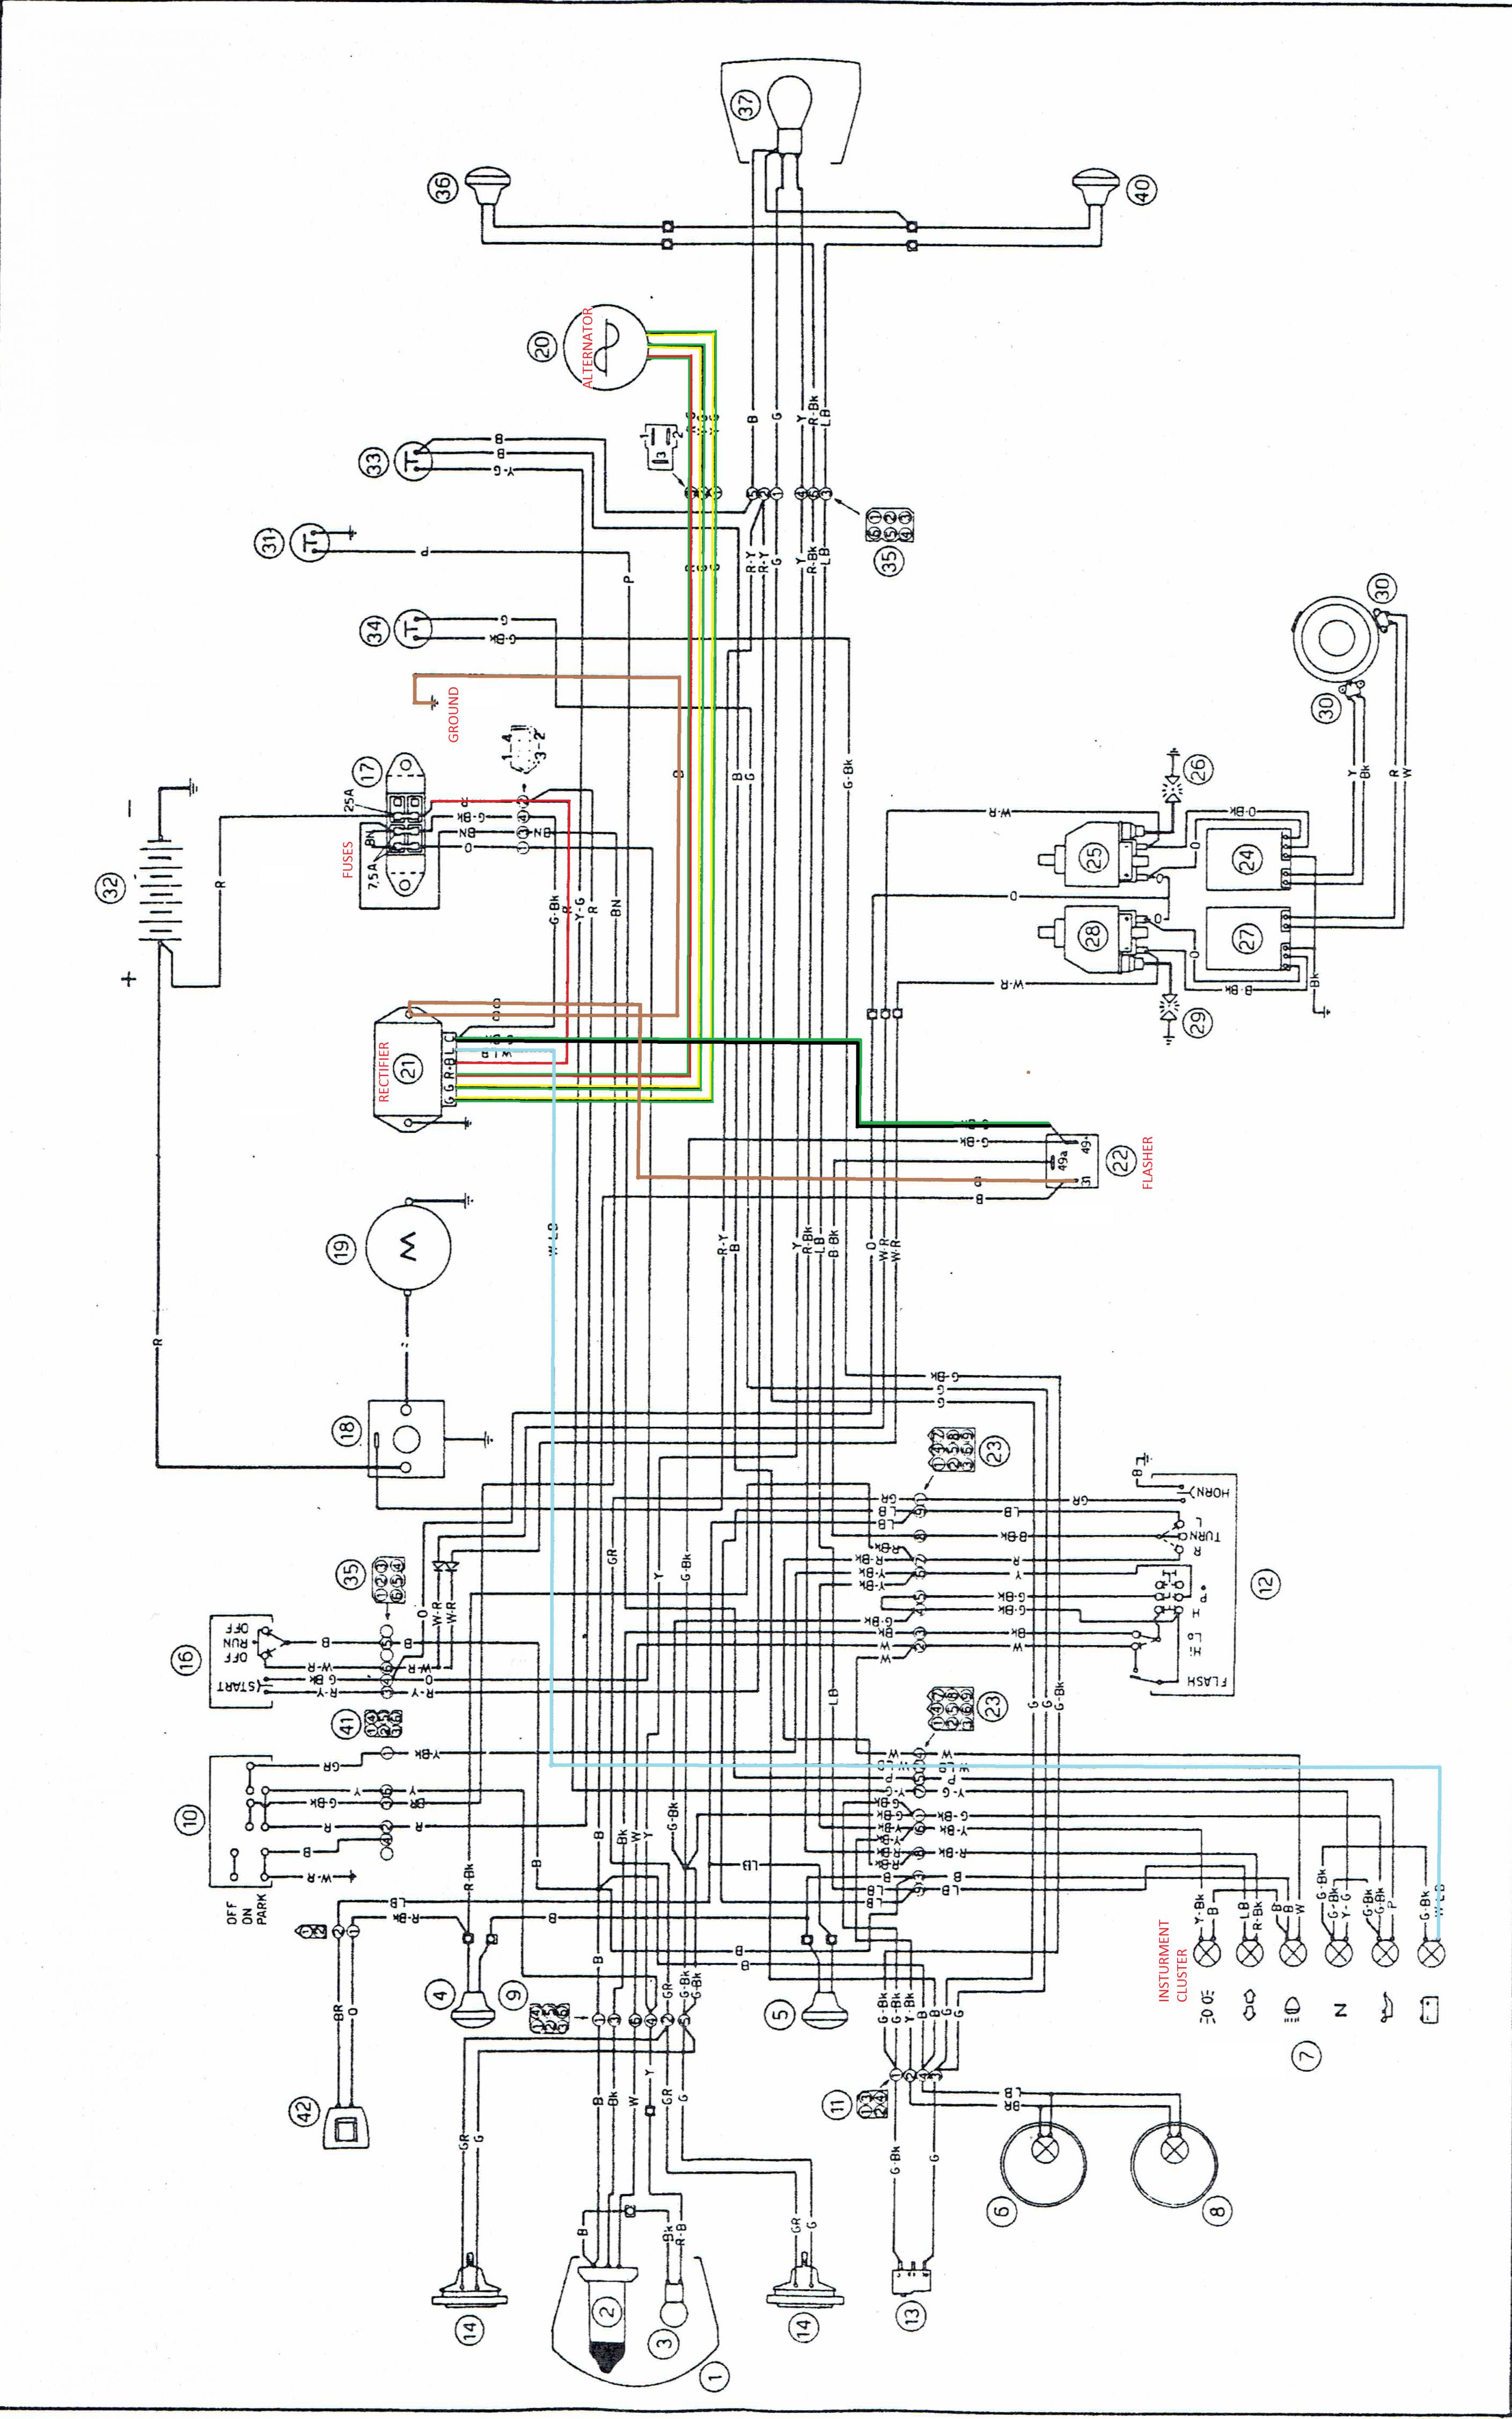 trail tech wiring diagram single phase to 3 motor best library rectifer dynatek click image for larger version name